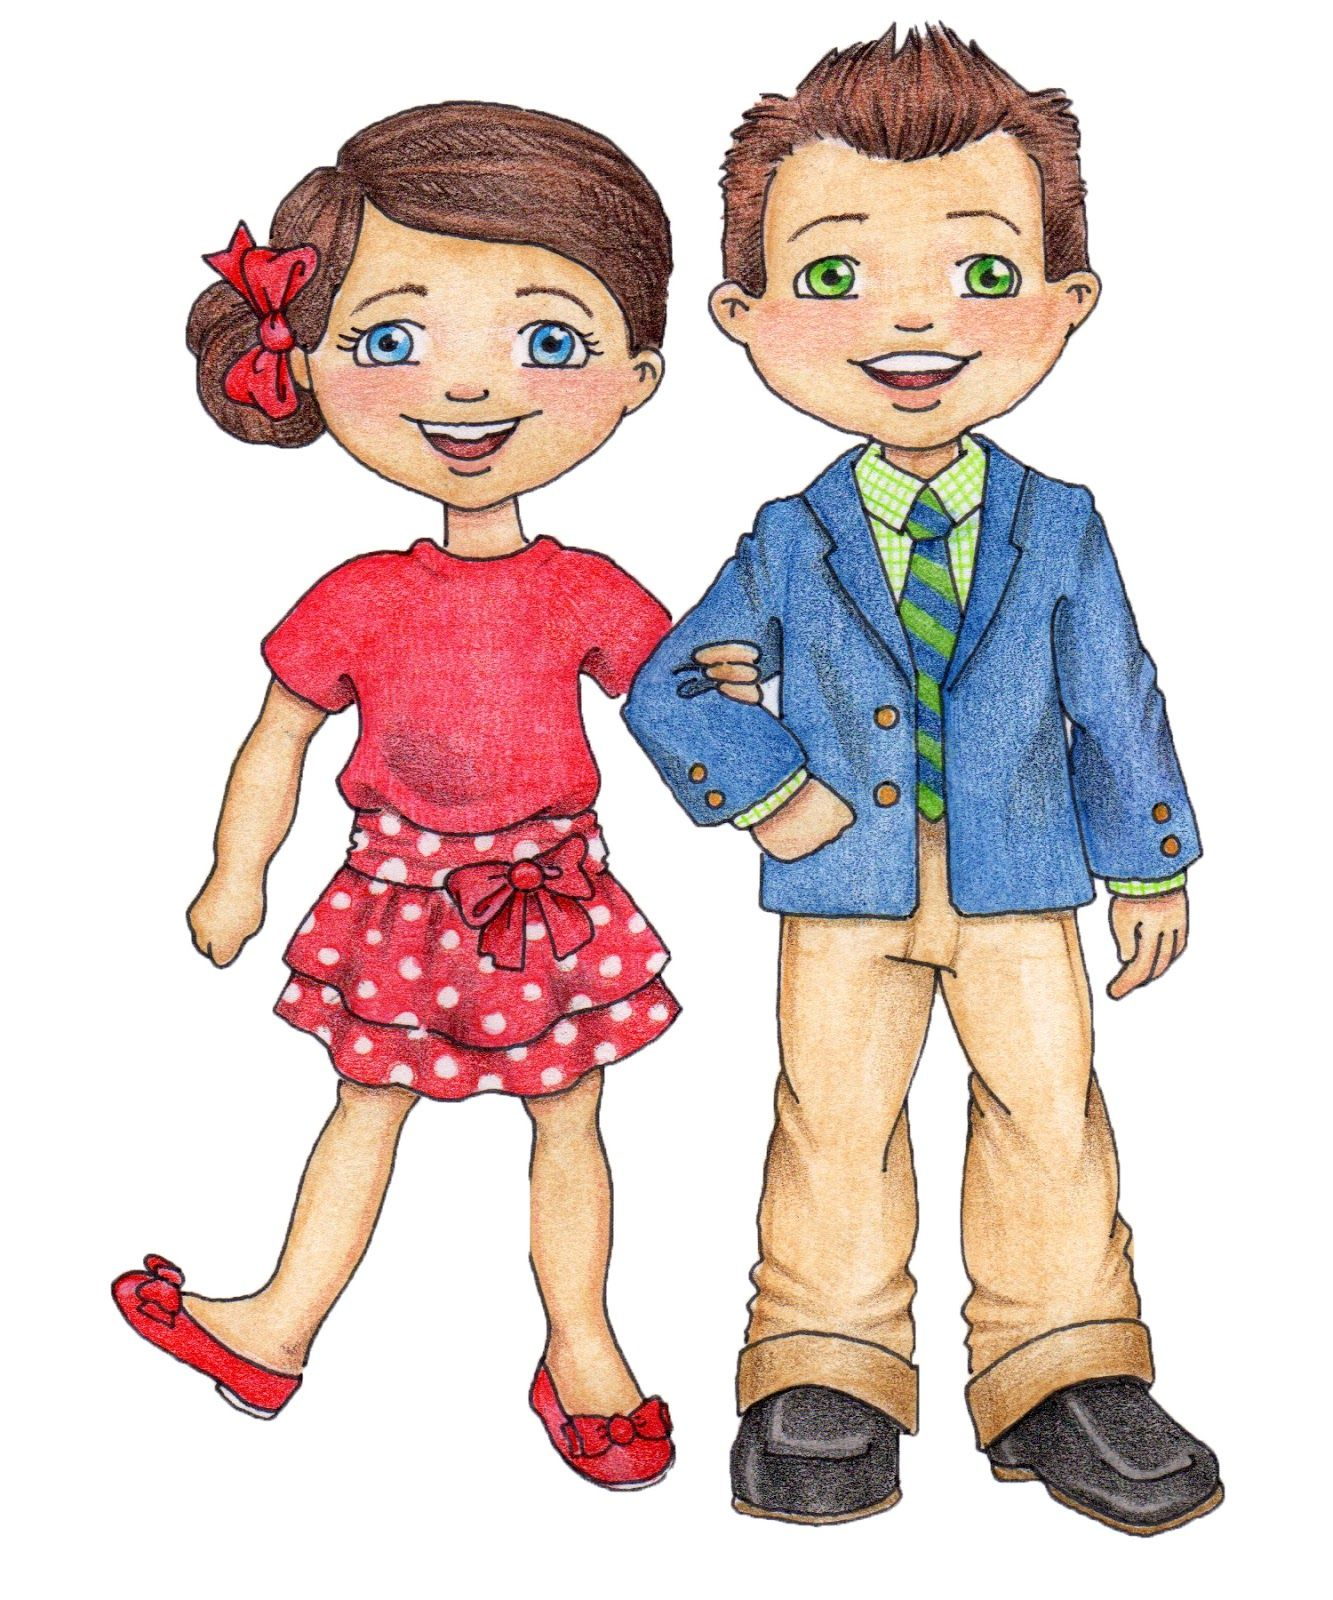 lds clip art susan fitch design primary boy girl primary clip rh pinterest com LDS Scriptures Clip Art Mormon Clip Art